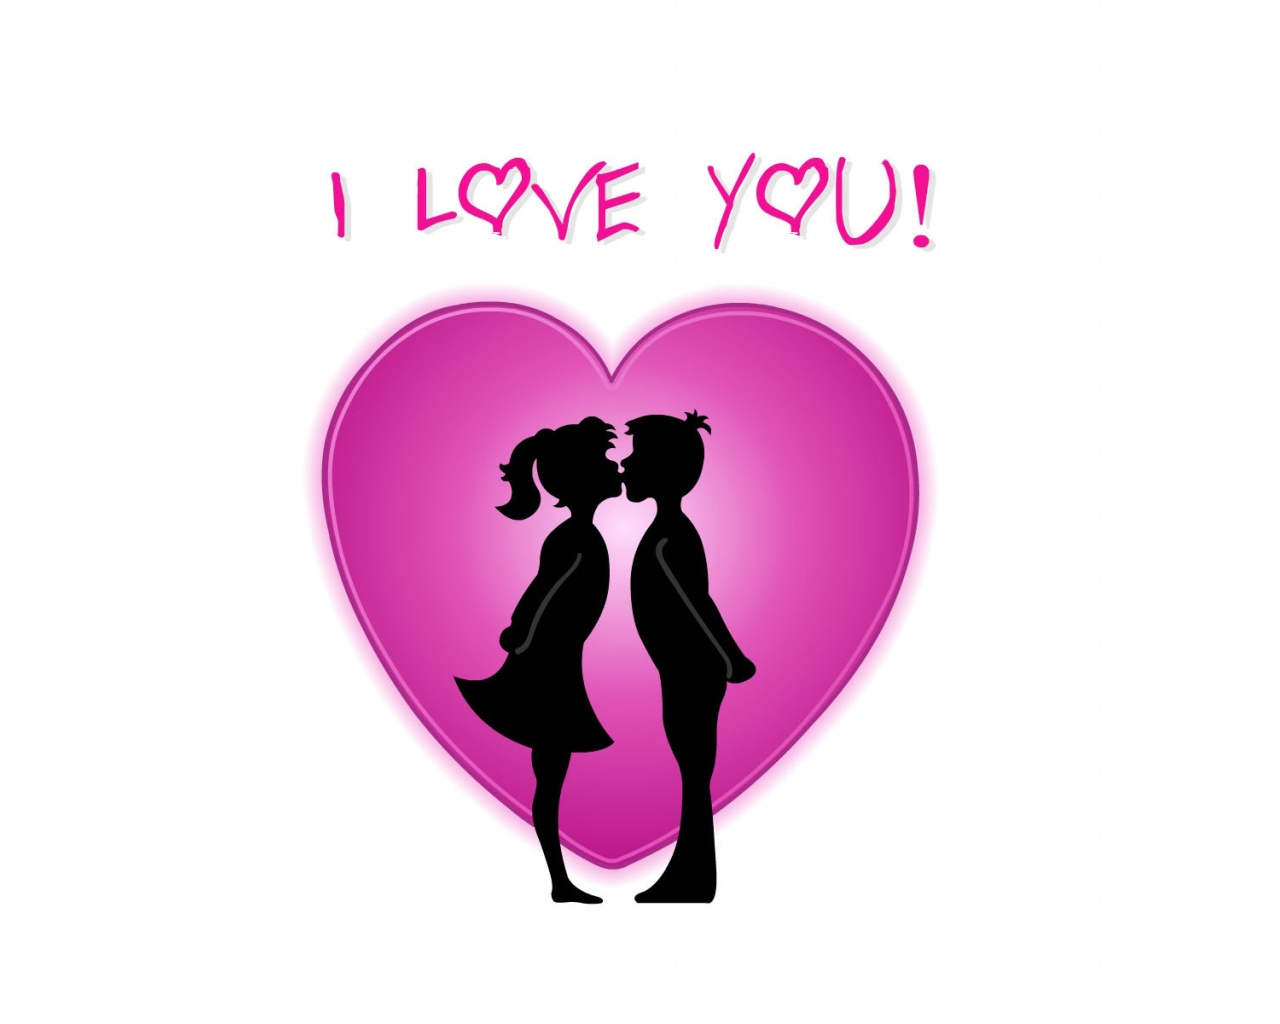 I Love You Wallpaper For Pc : 1280x1024 I love you desktop Pc and Mac wallpaper